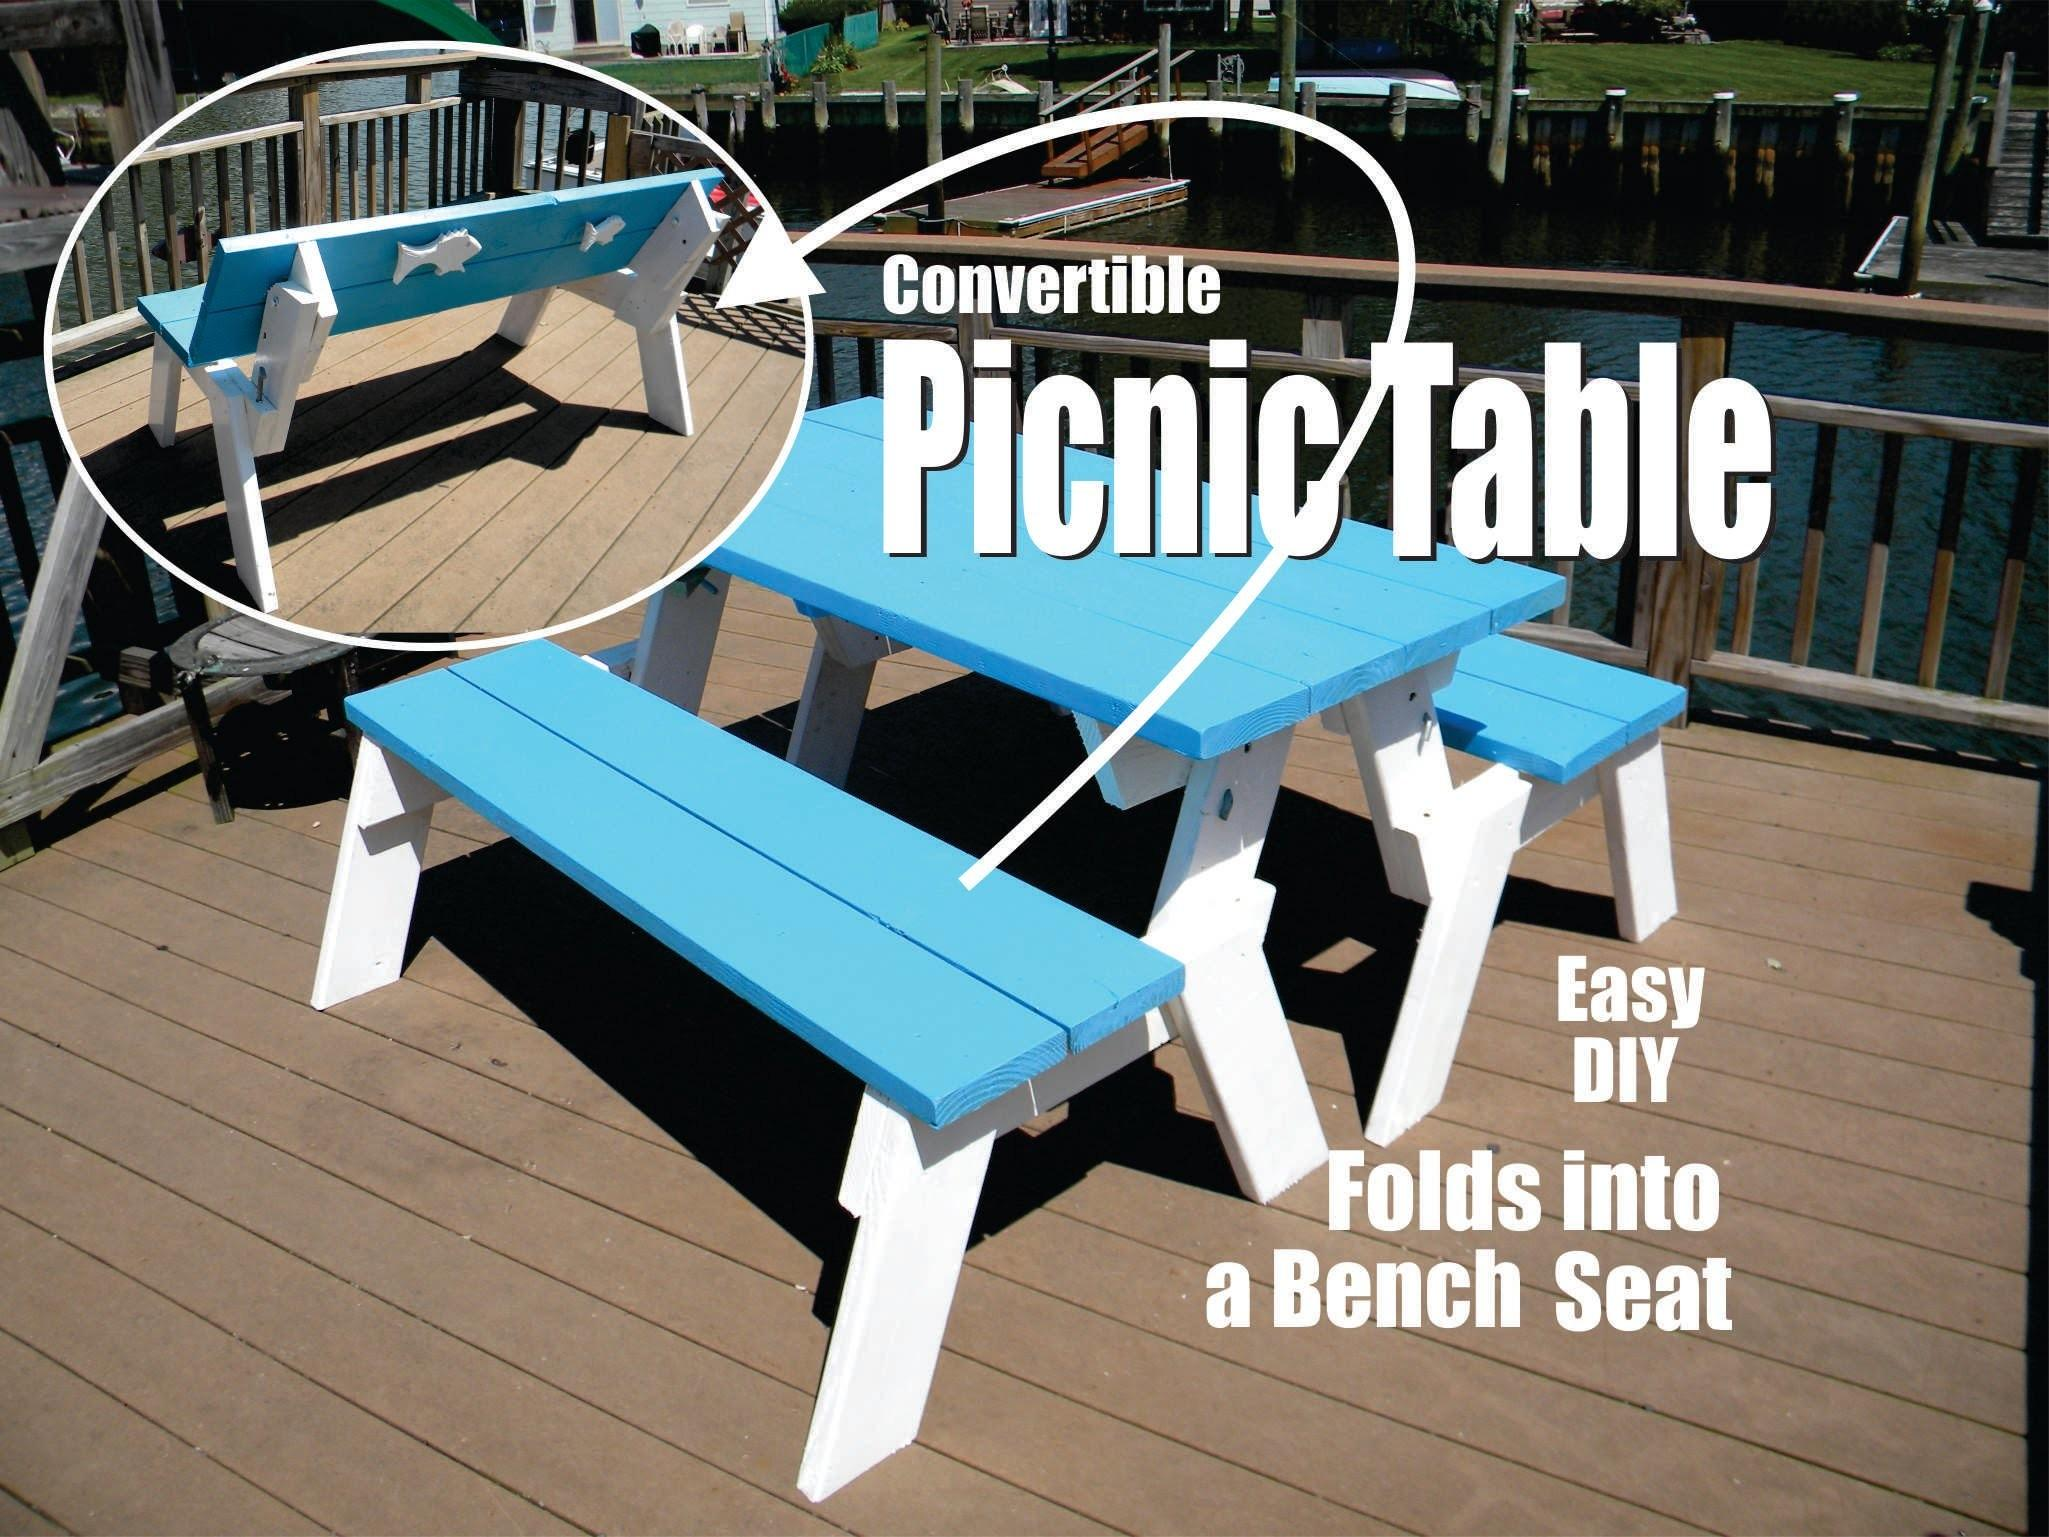 Diy Convertible Picnic Table Folds Into Bench Seats